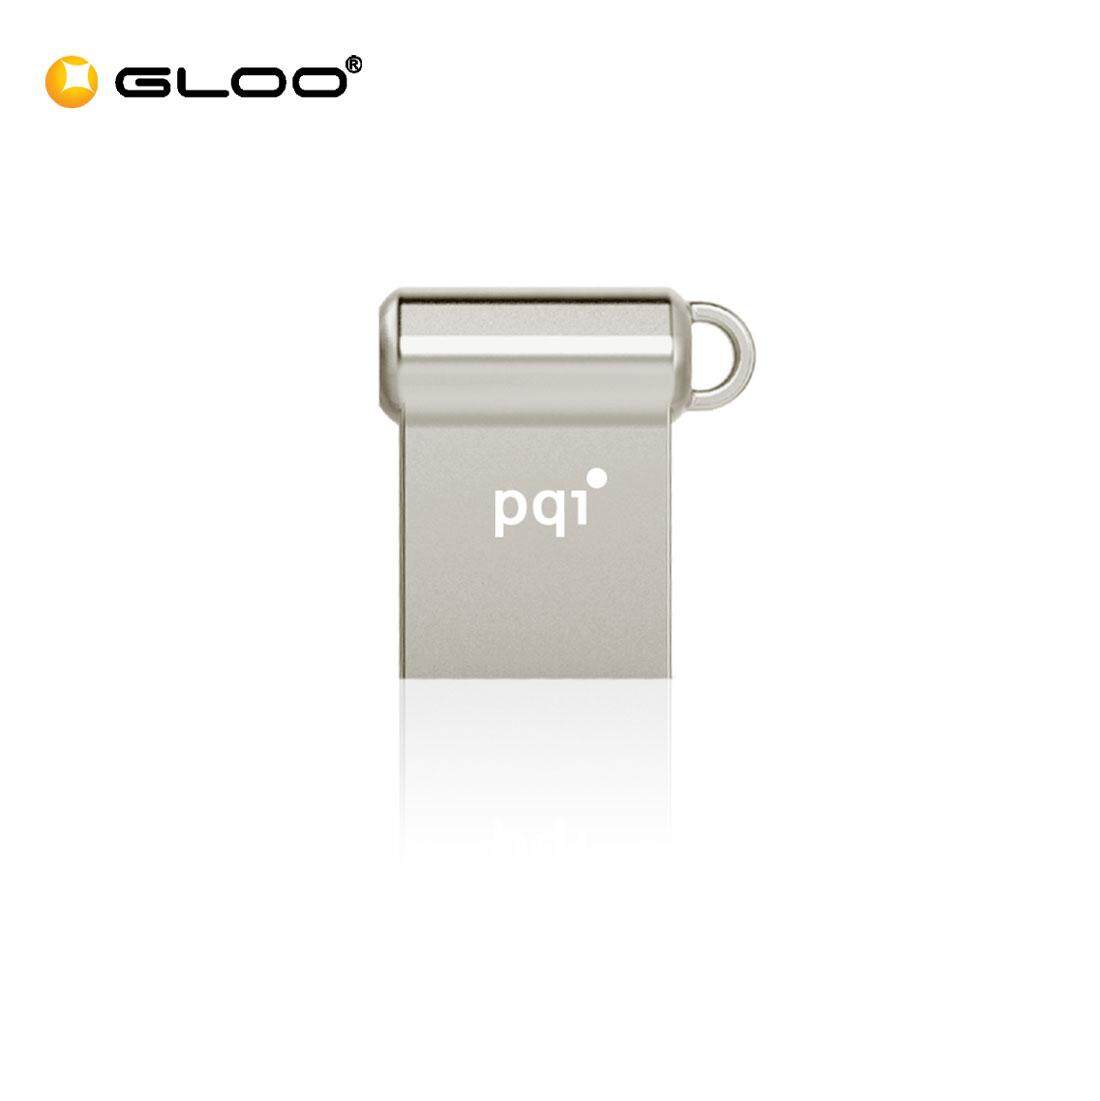 PQI i-mini II U838V (64GB) Silver Flashdrive 4712876270314